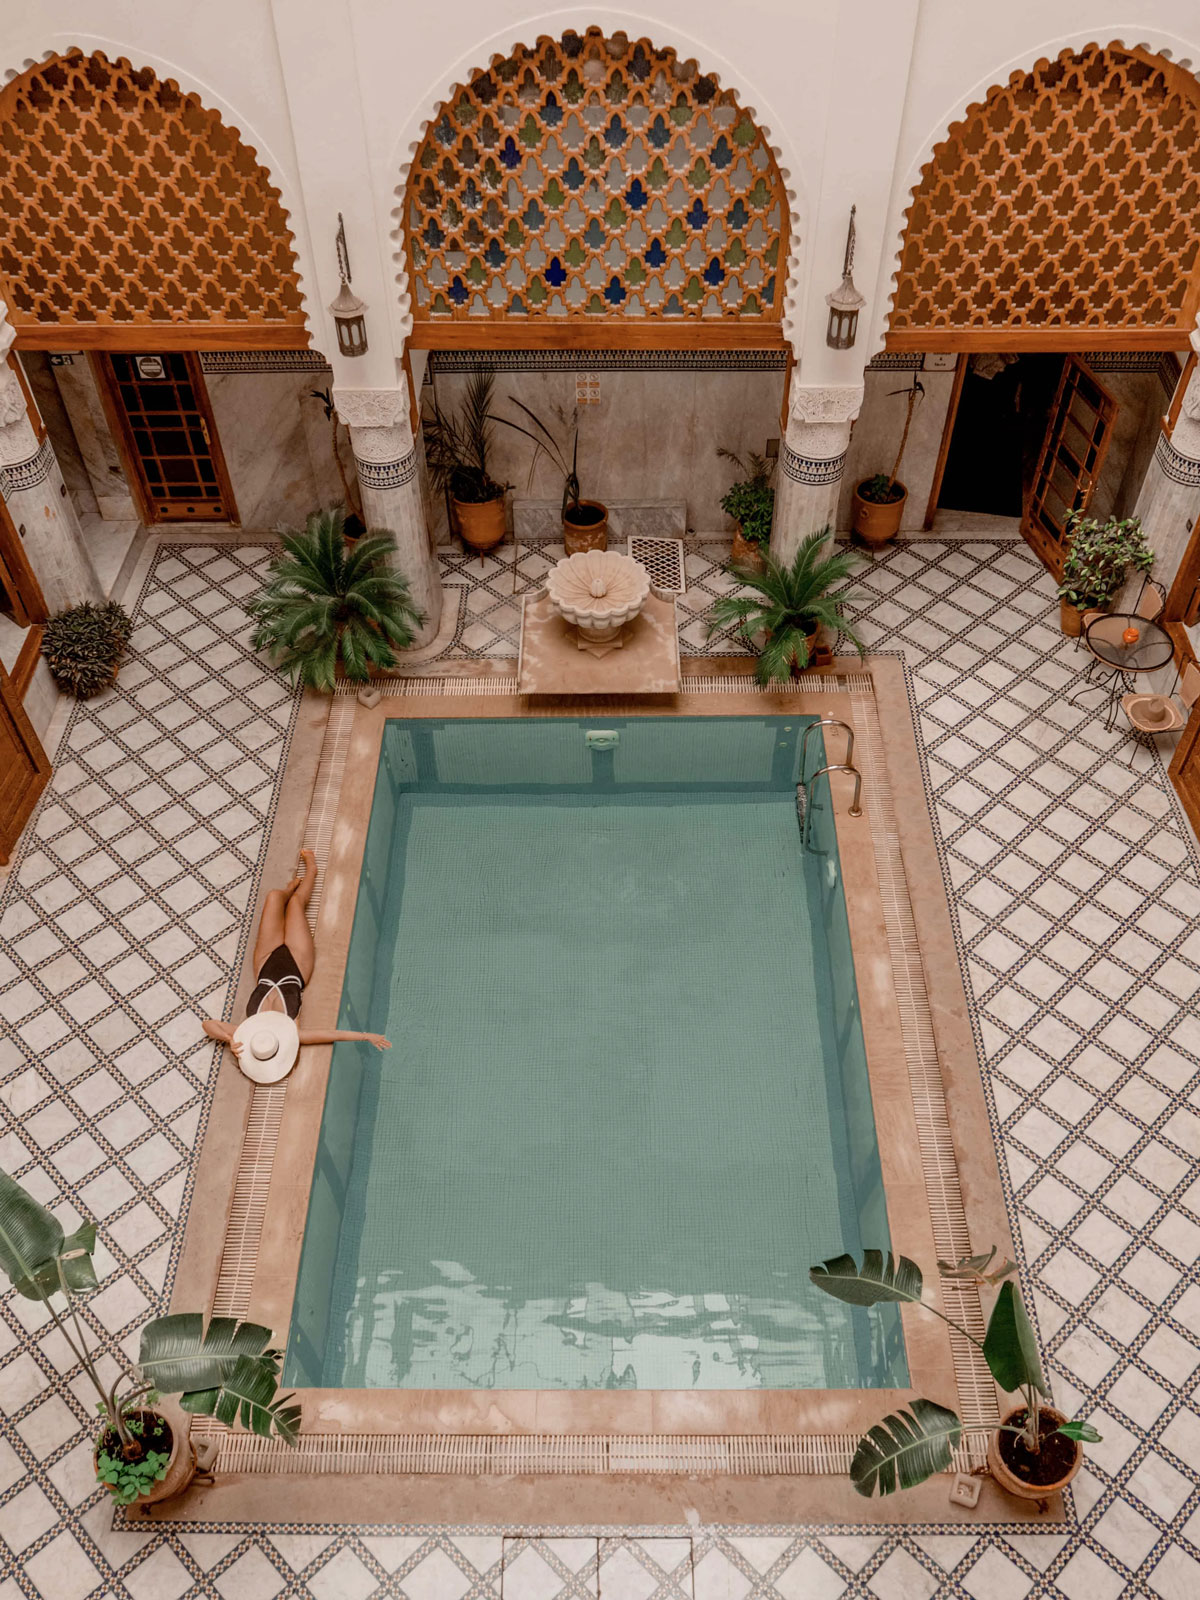 Top-things-to-do-in-Fez-Bucket-list-kelseyinlondon-Kelsey-Heinrichs--What-to-do-in-Fez--Where-to-go-in-Fez-top-places-in-Fez-riad